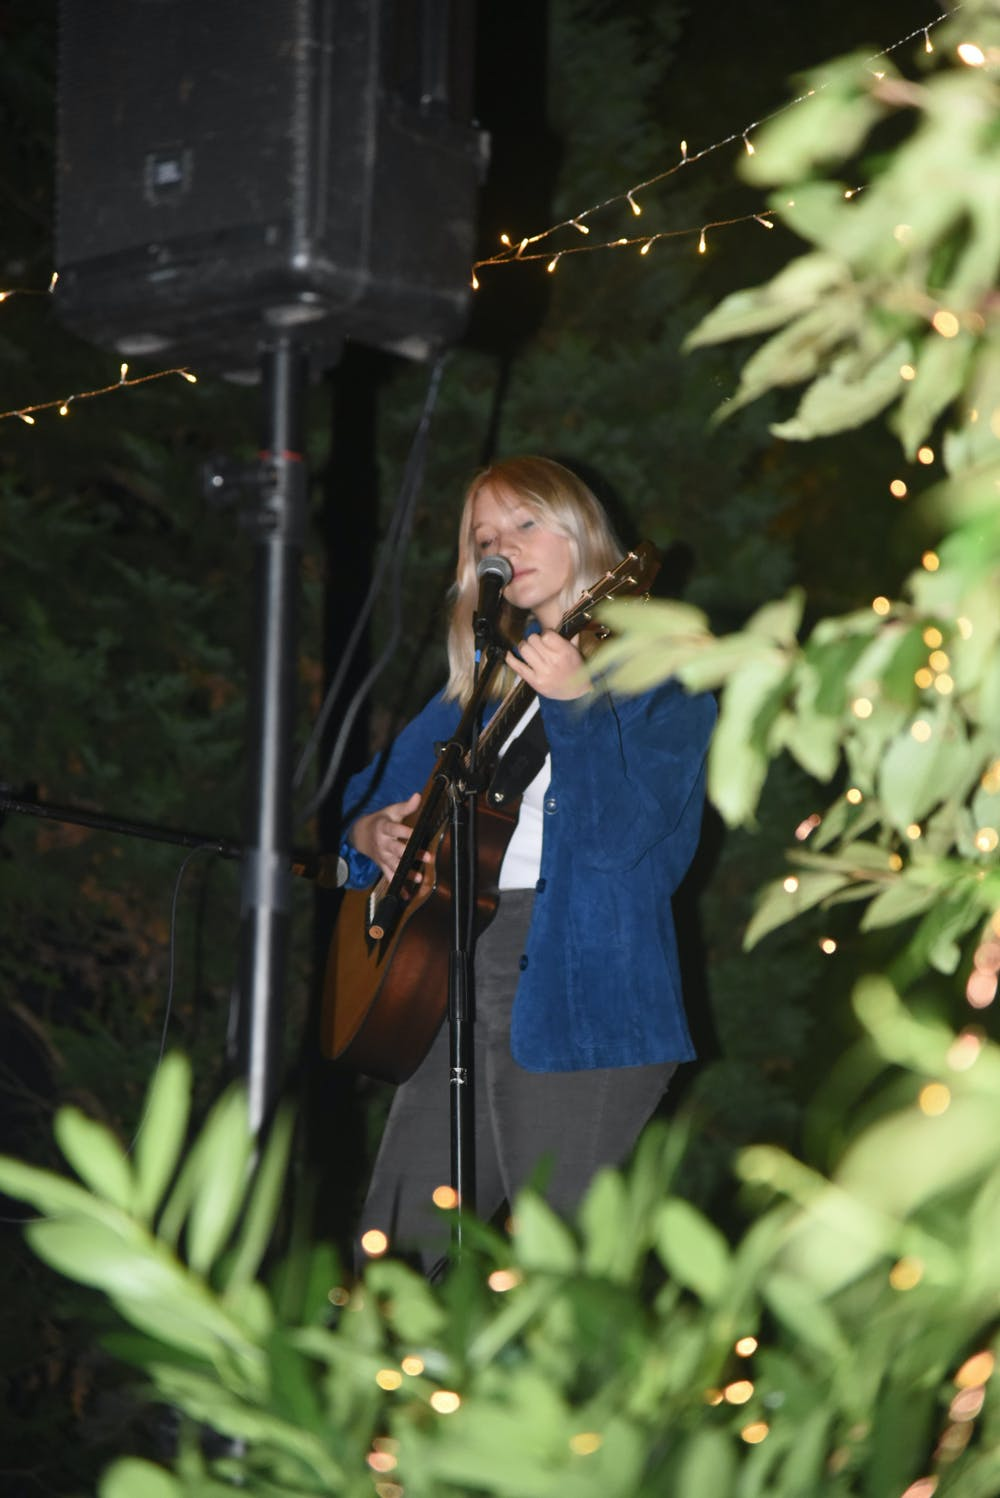 <p>Performers included Ellie Tapping '24, Tara Mandal '24, Laura David '24, and Gus Benson '23. They had each collaborated with Sounds@Brown in the past. </p>